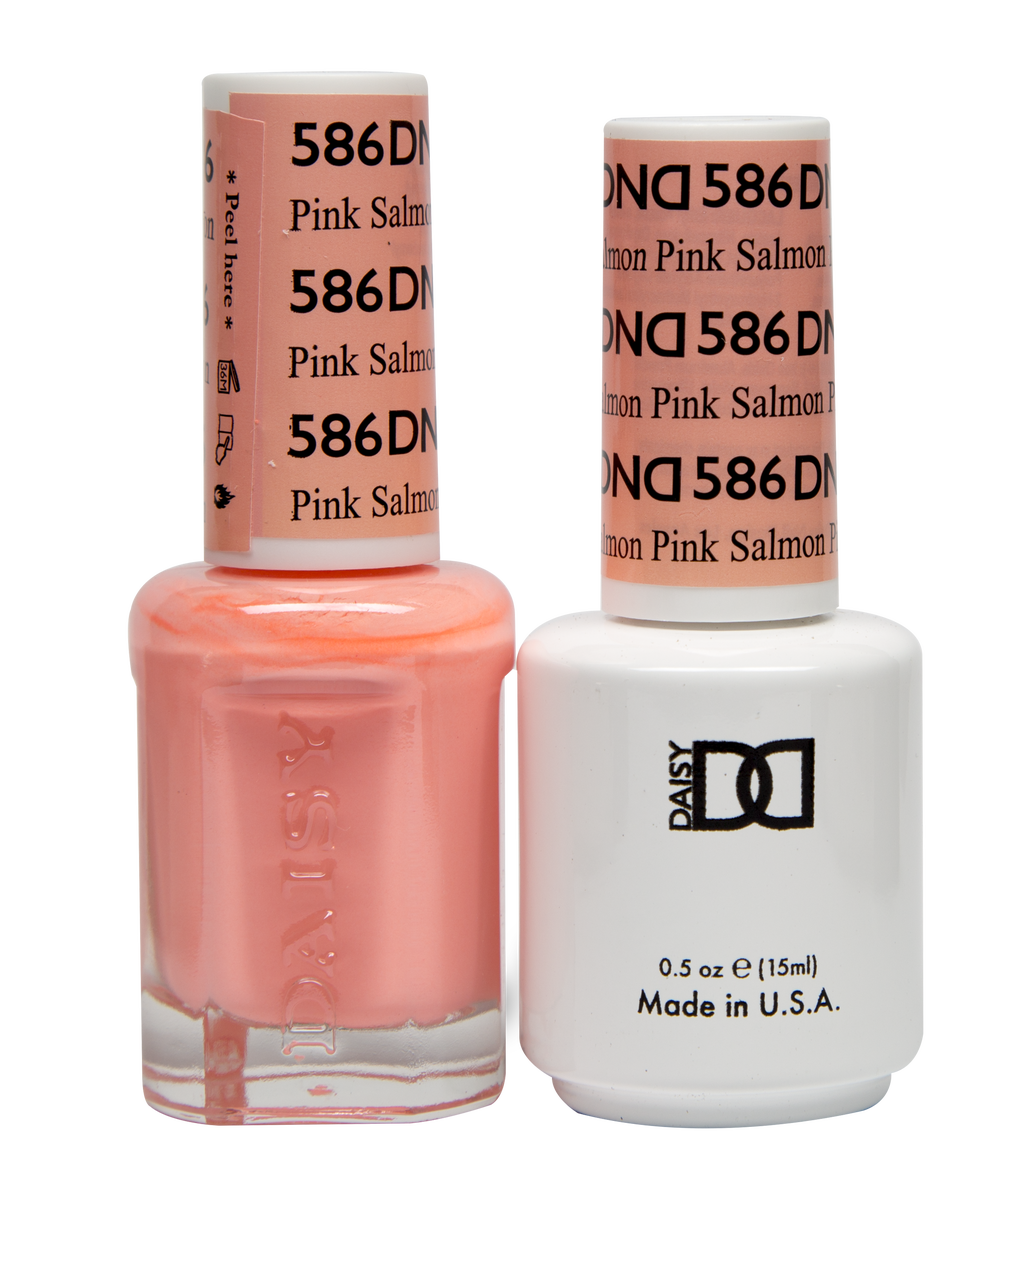 Dnd Soak Off Gel Polish Duo Diva Collection Pink Salmon 586